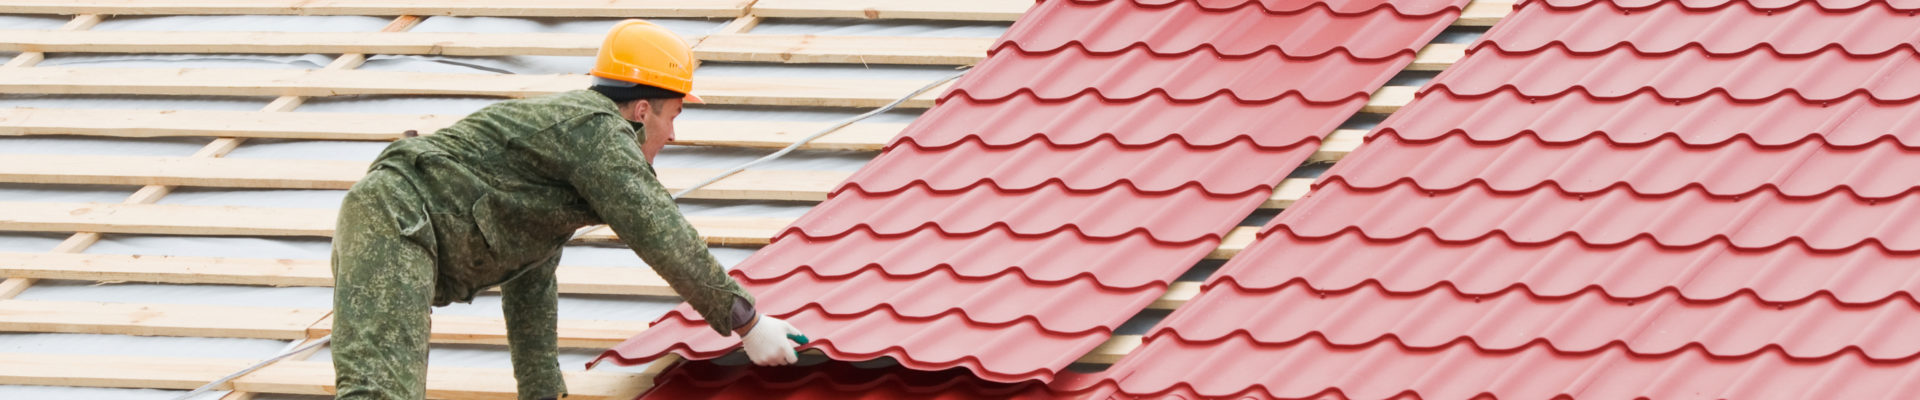 Hire The Best Storm Damage Restoration Firm in Ring Gold